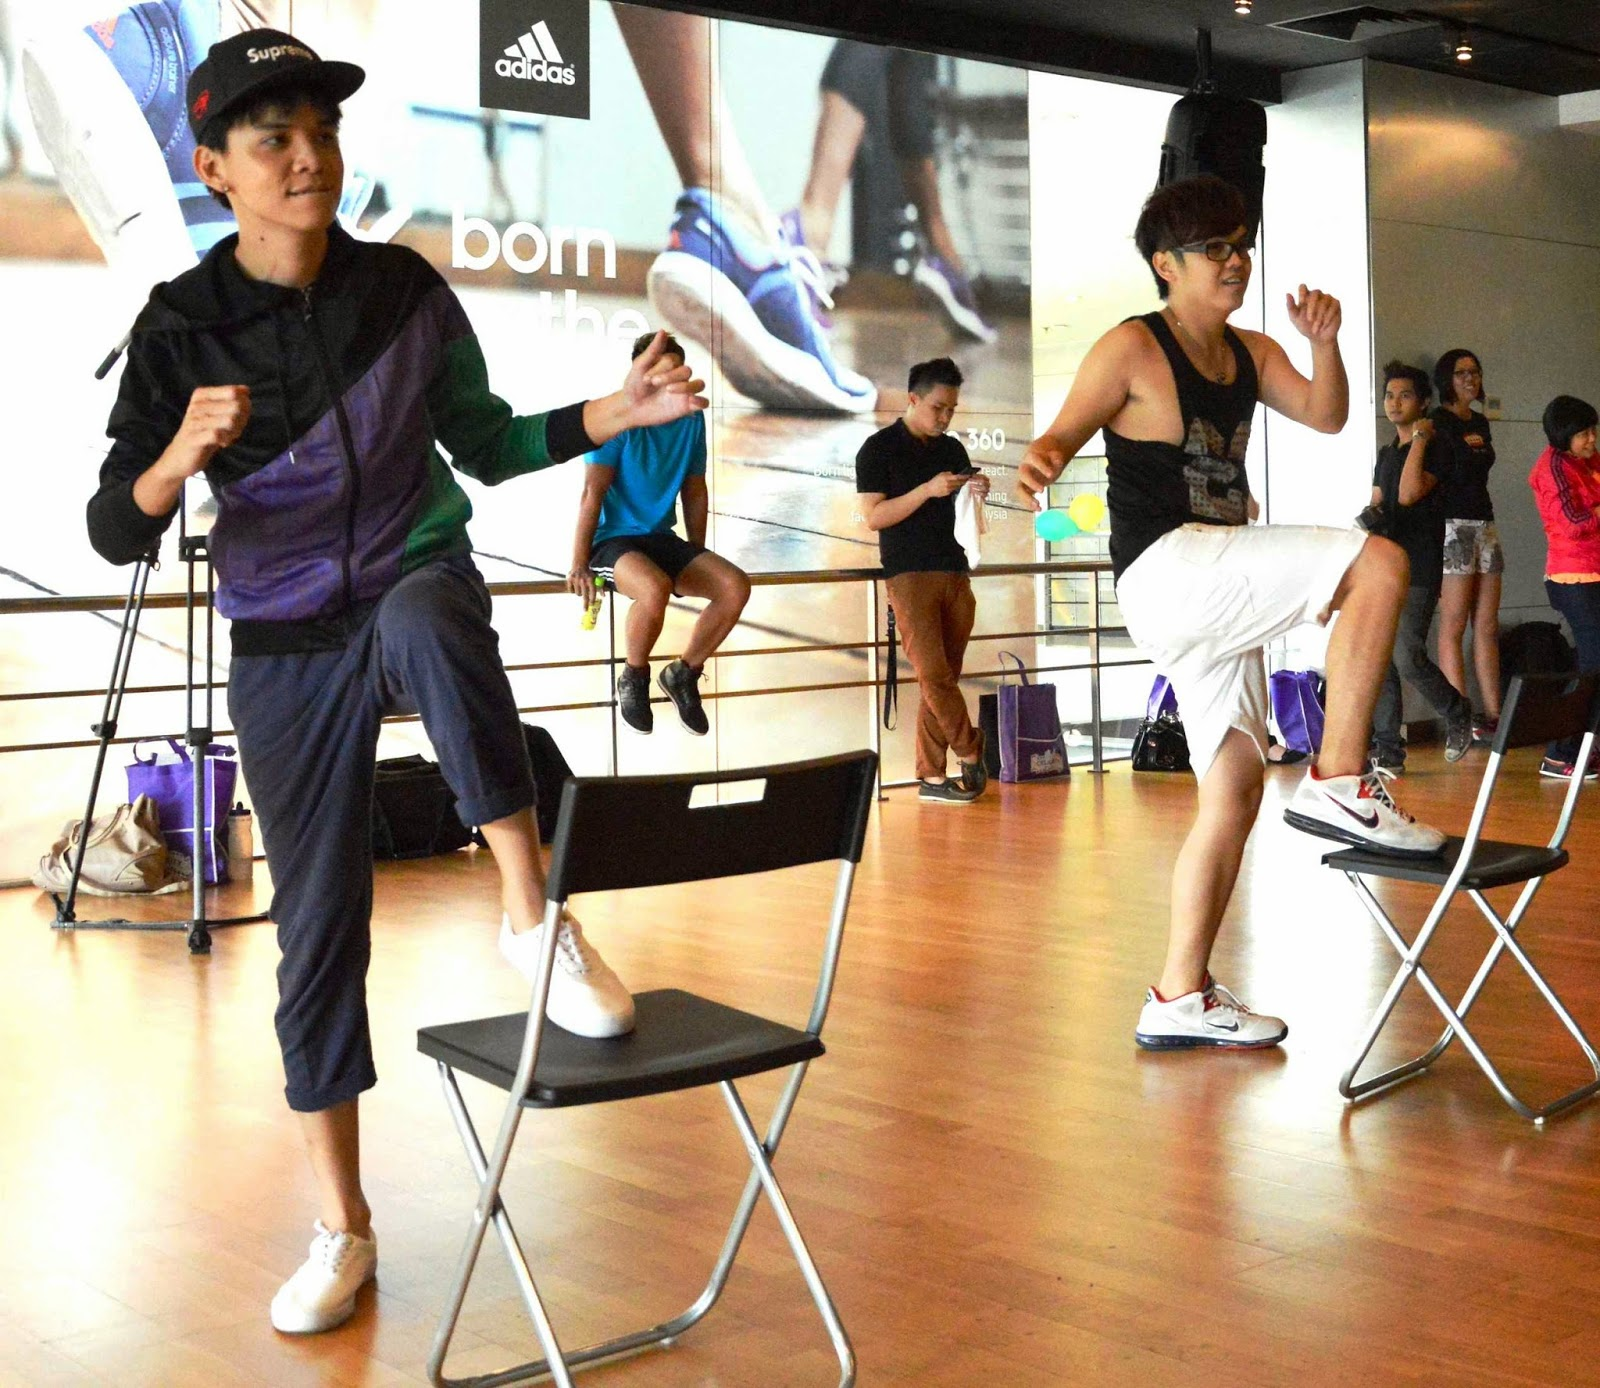 gym chair malaysia black office chairs with wheels zumba your way to fitness sizzling new dance partners